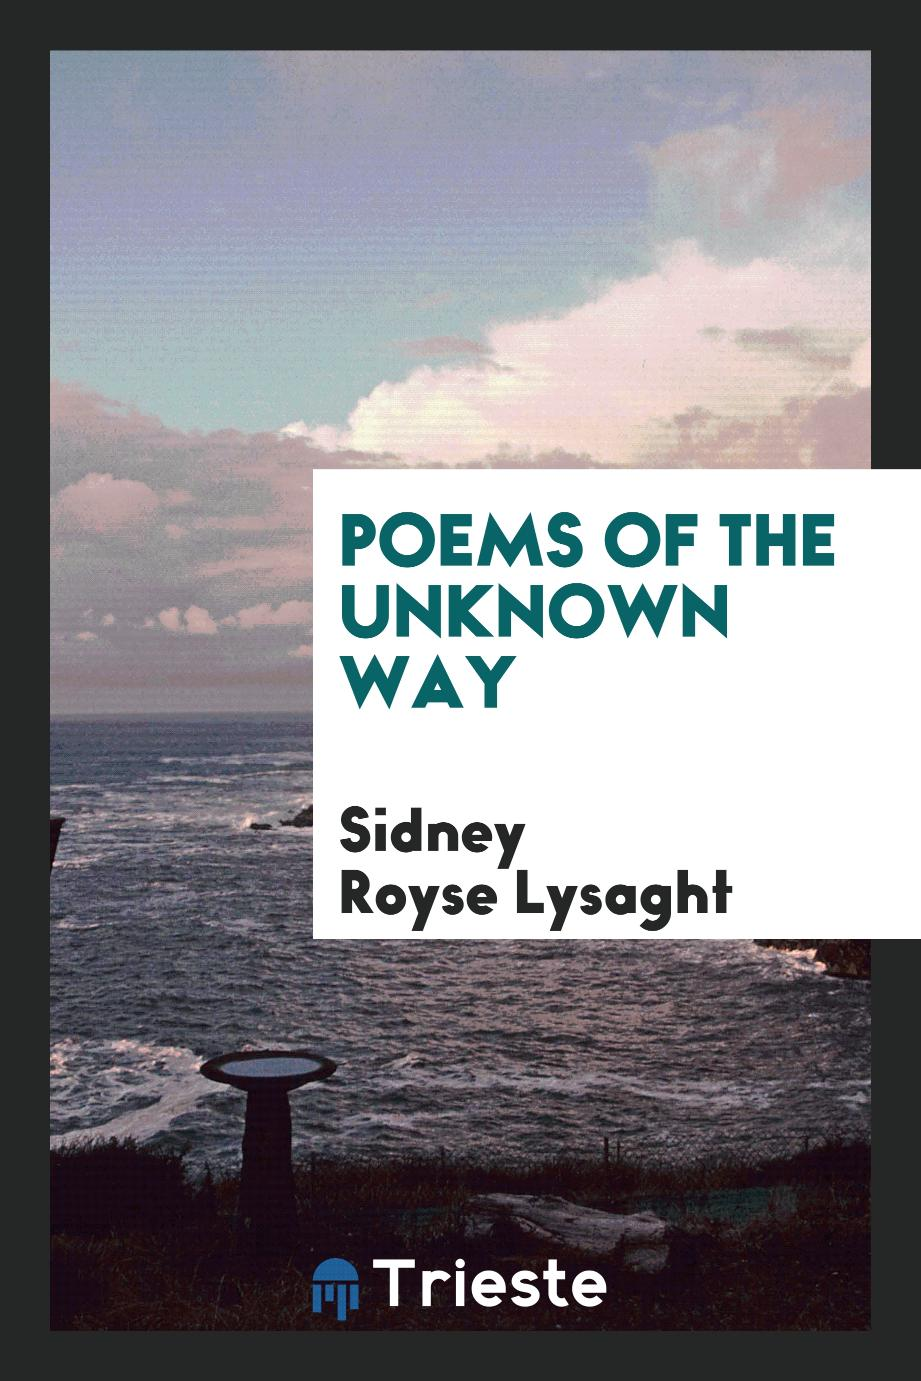 Poems of the Unknown Way